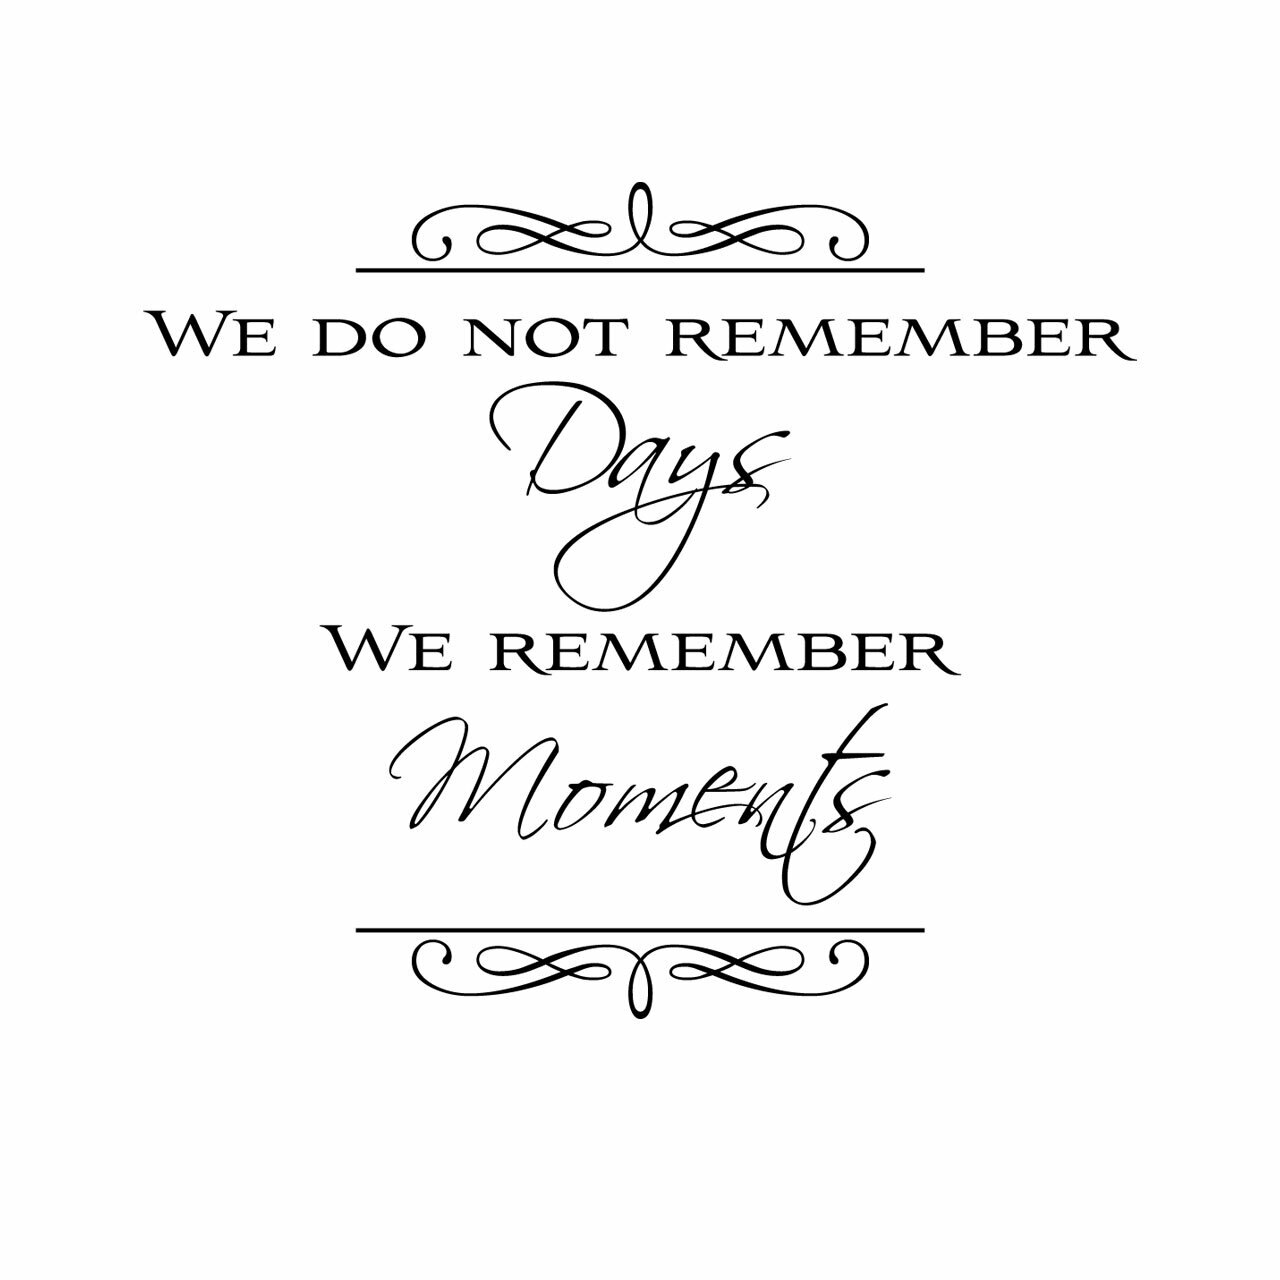 We do not remember days we remember moments written in mixed fonts in black on a white background